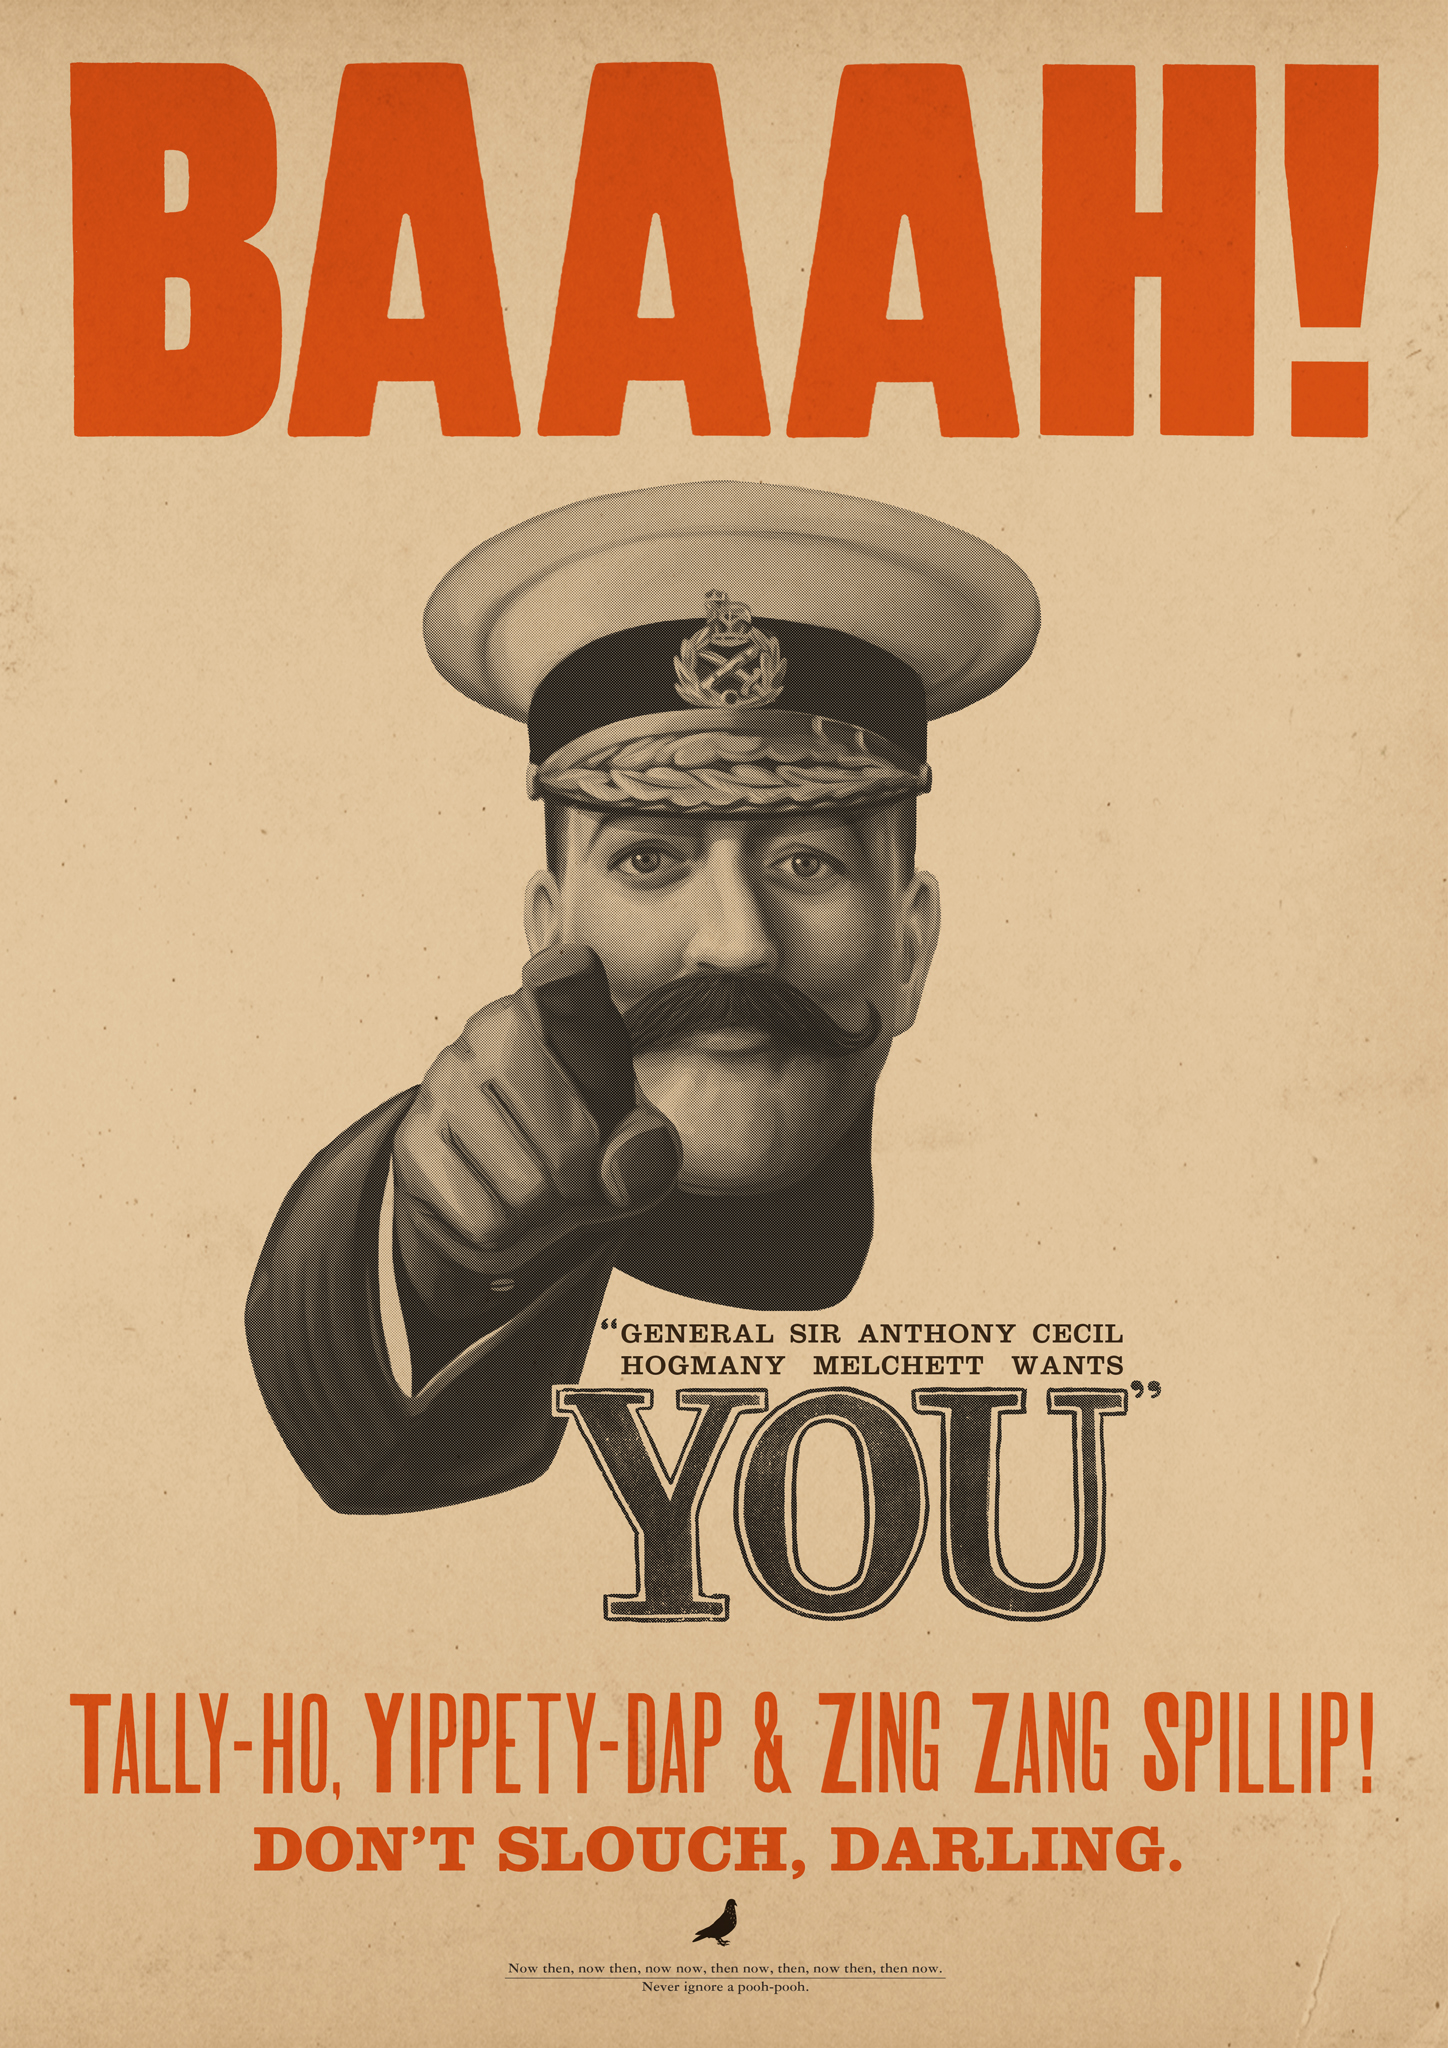 General Melchett Wants You!